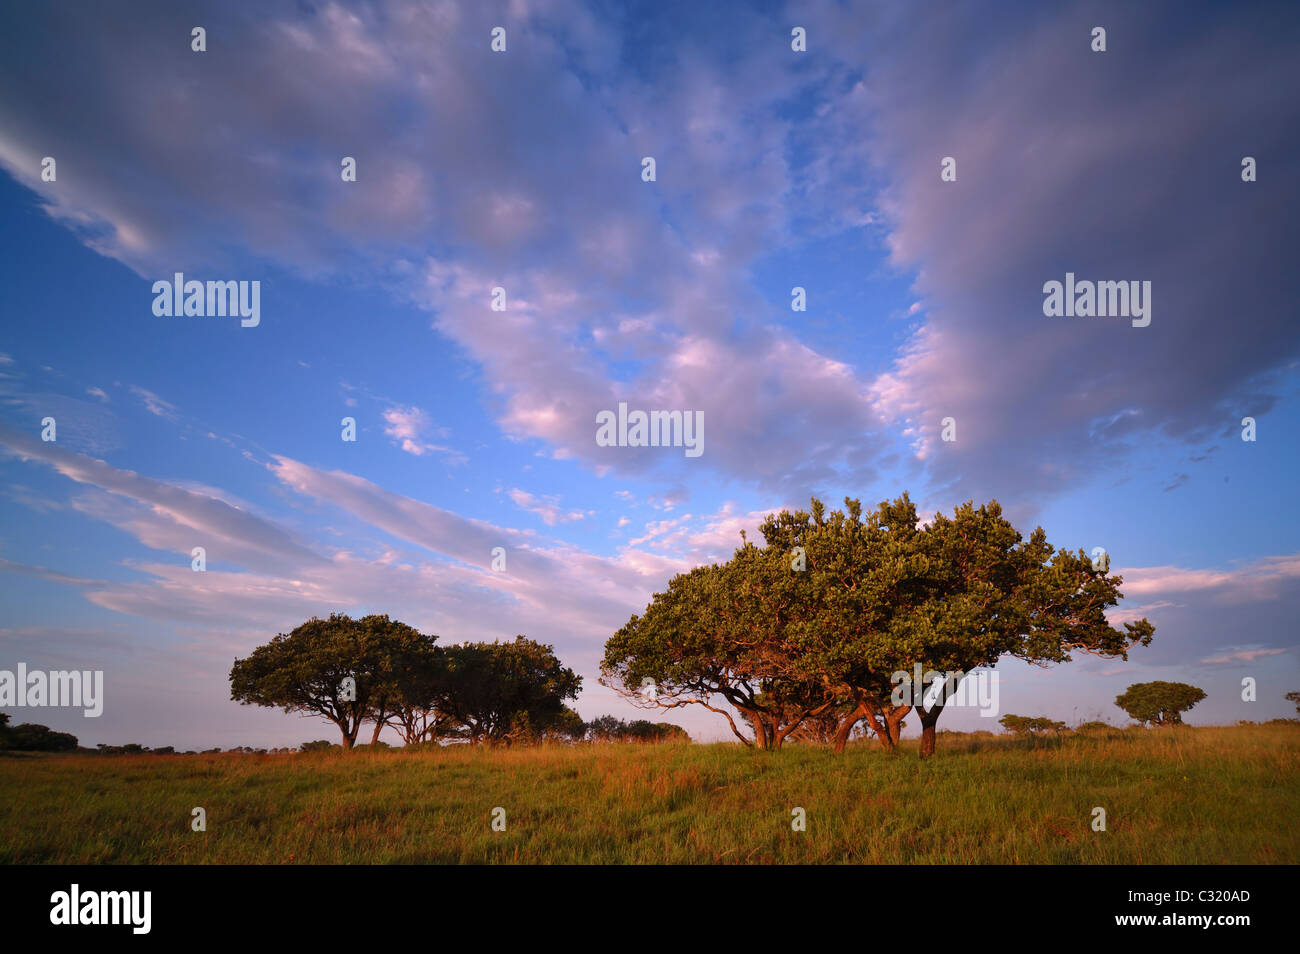 Low angle view of thorn trees in a grass field, iSimangaliso Wetland Park, Kwazulu-Natal, South Africa - Stock Image